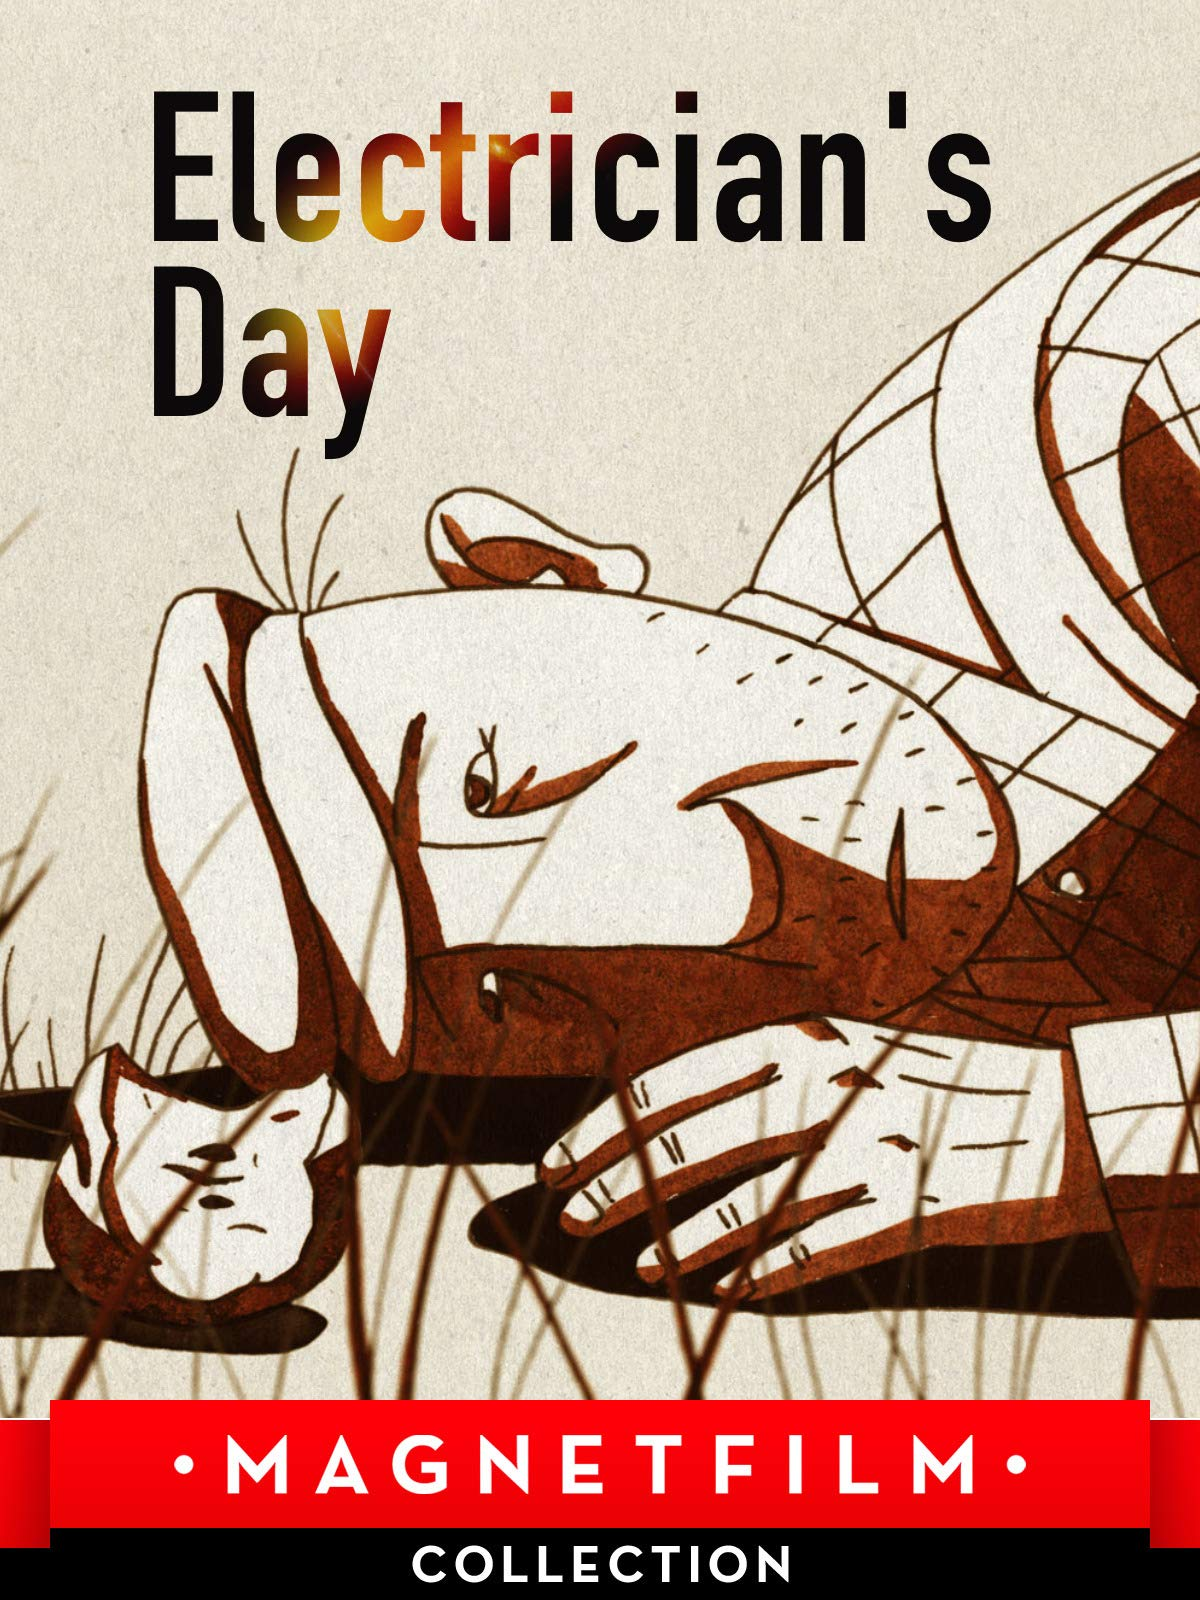 Electrician's Day